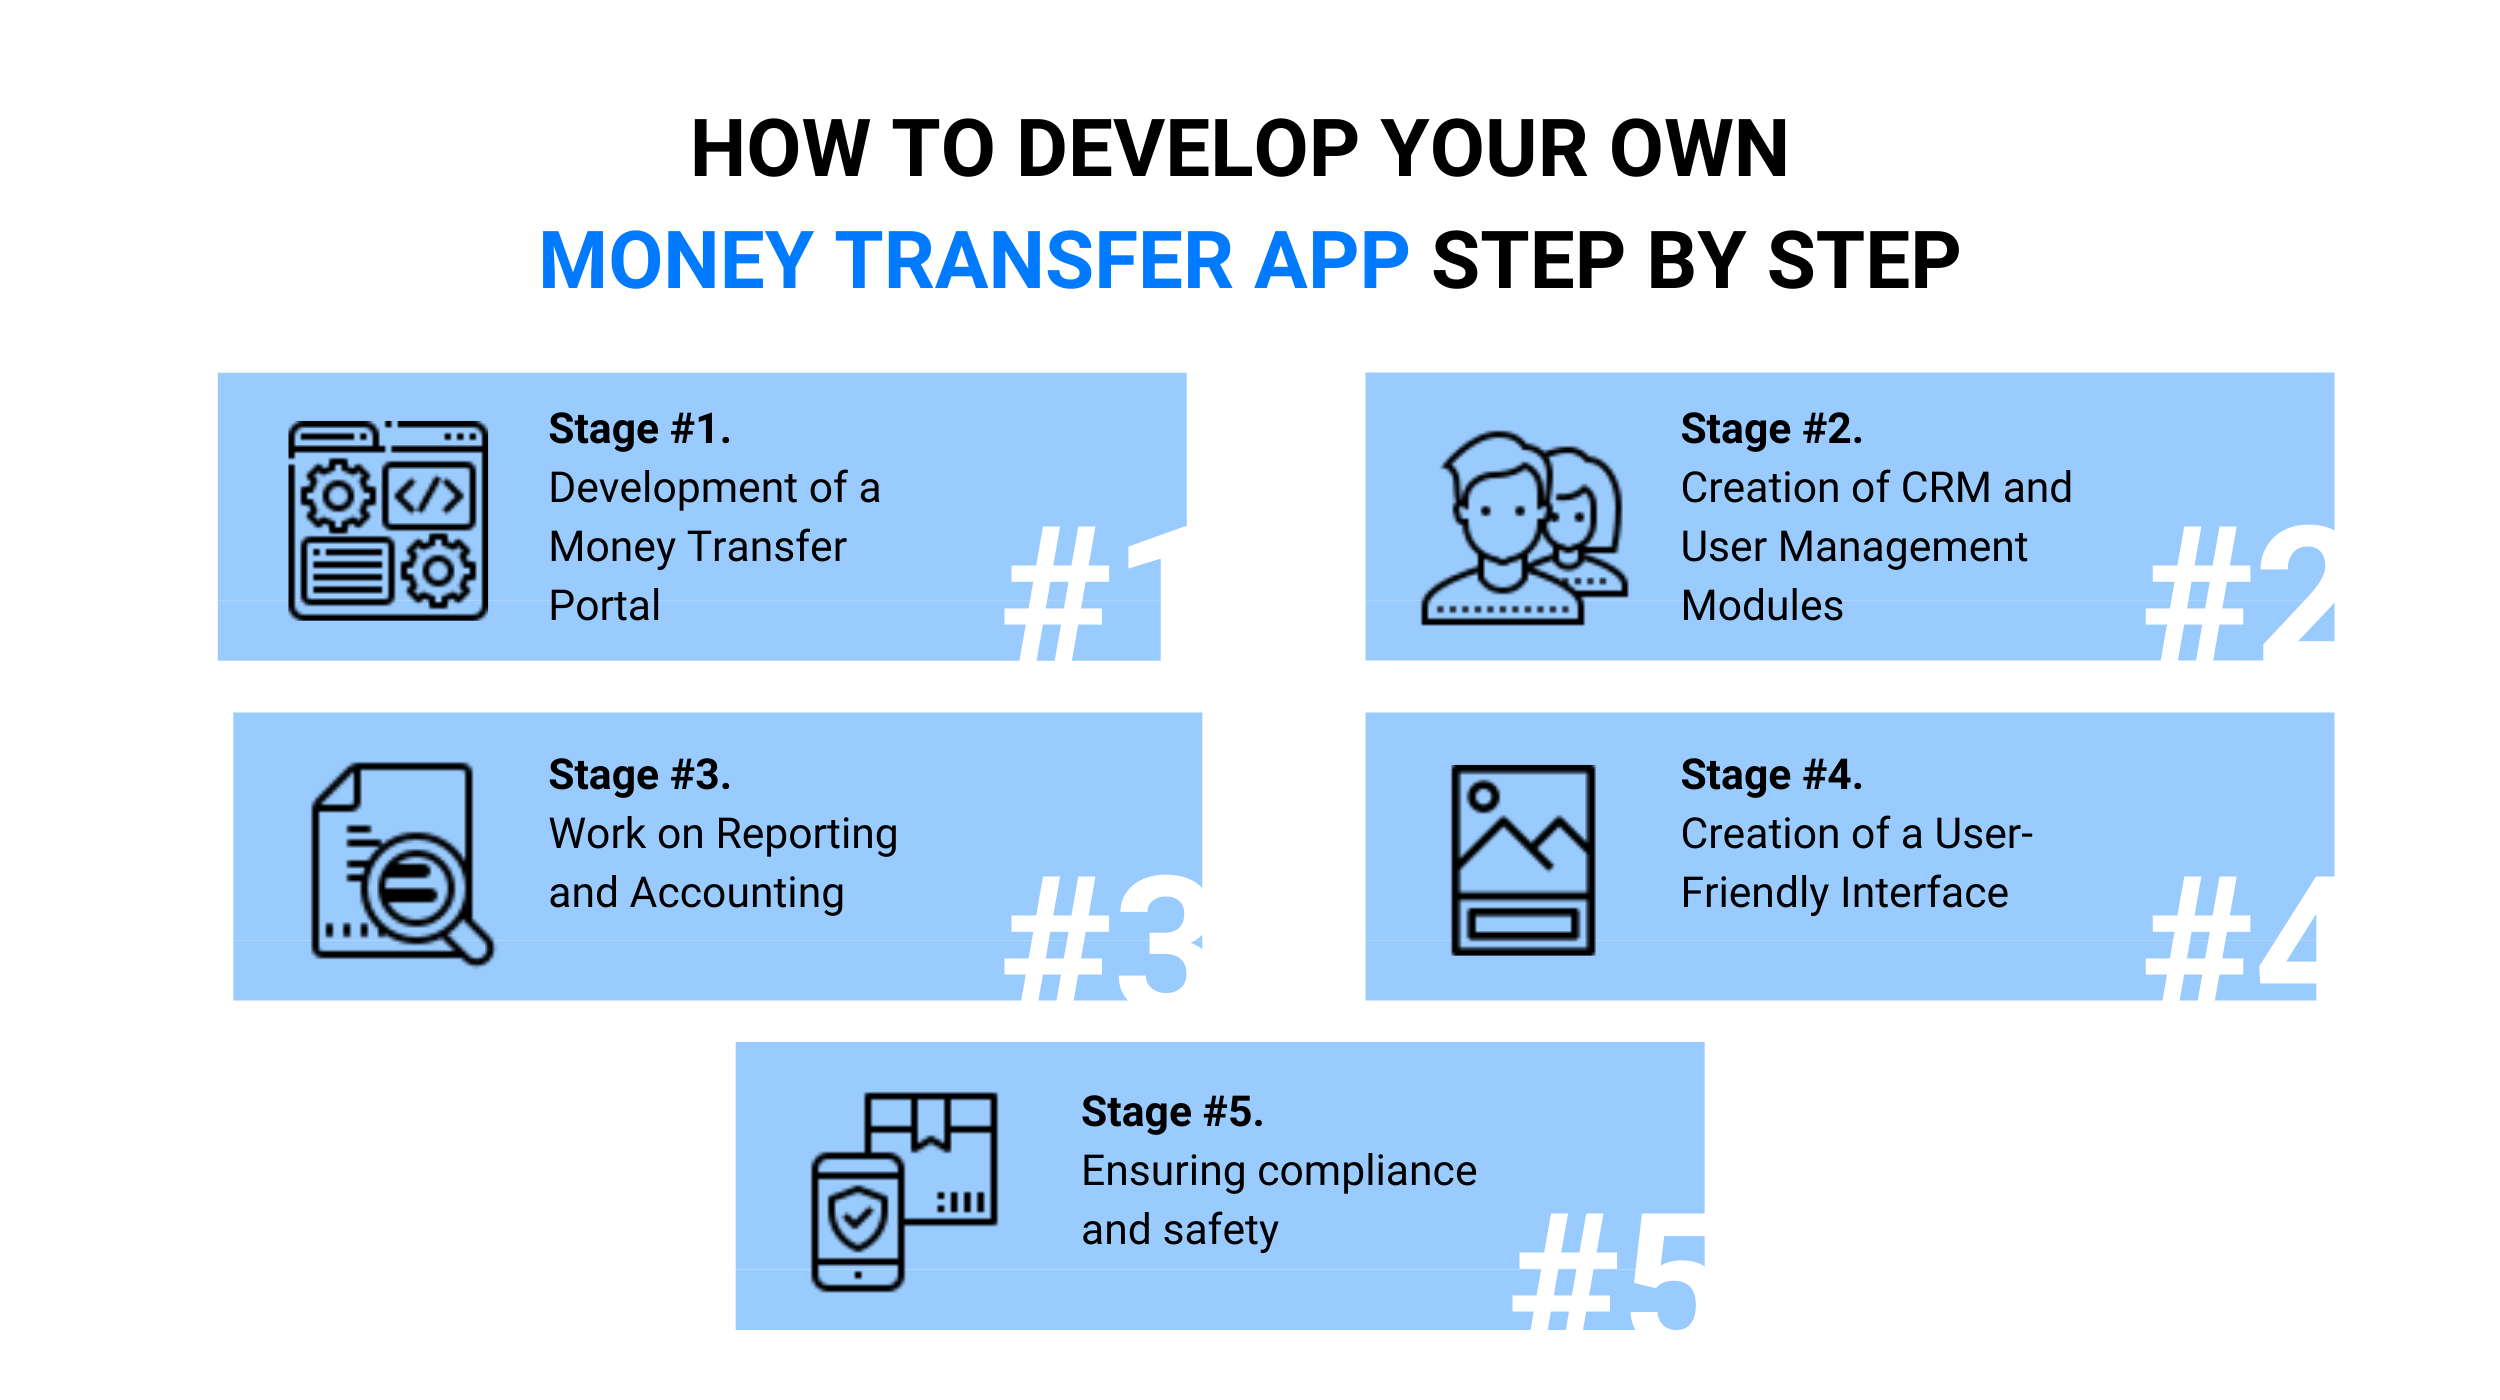 How to Develop Your Own Money Transfer App Step by Step